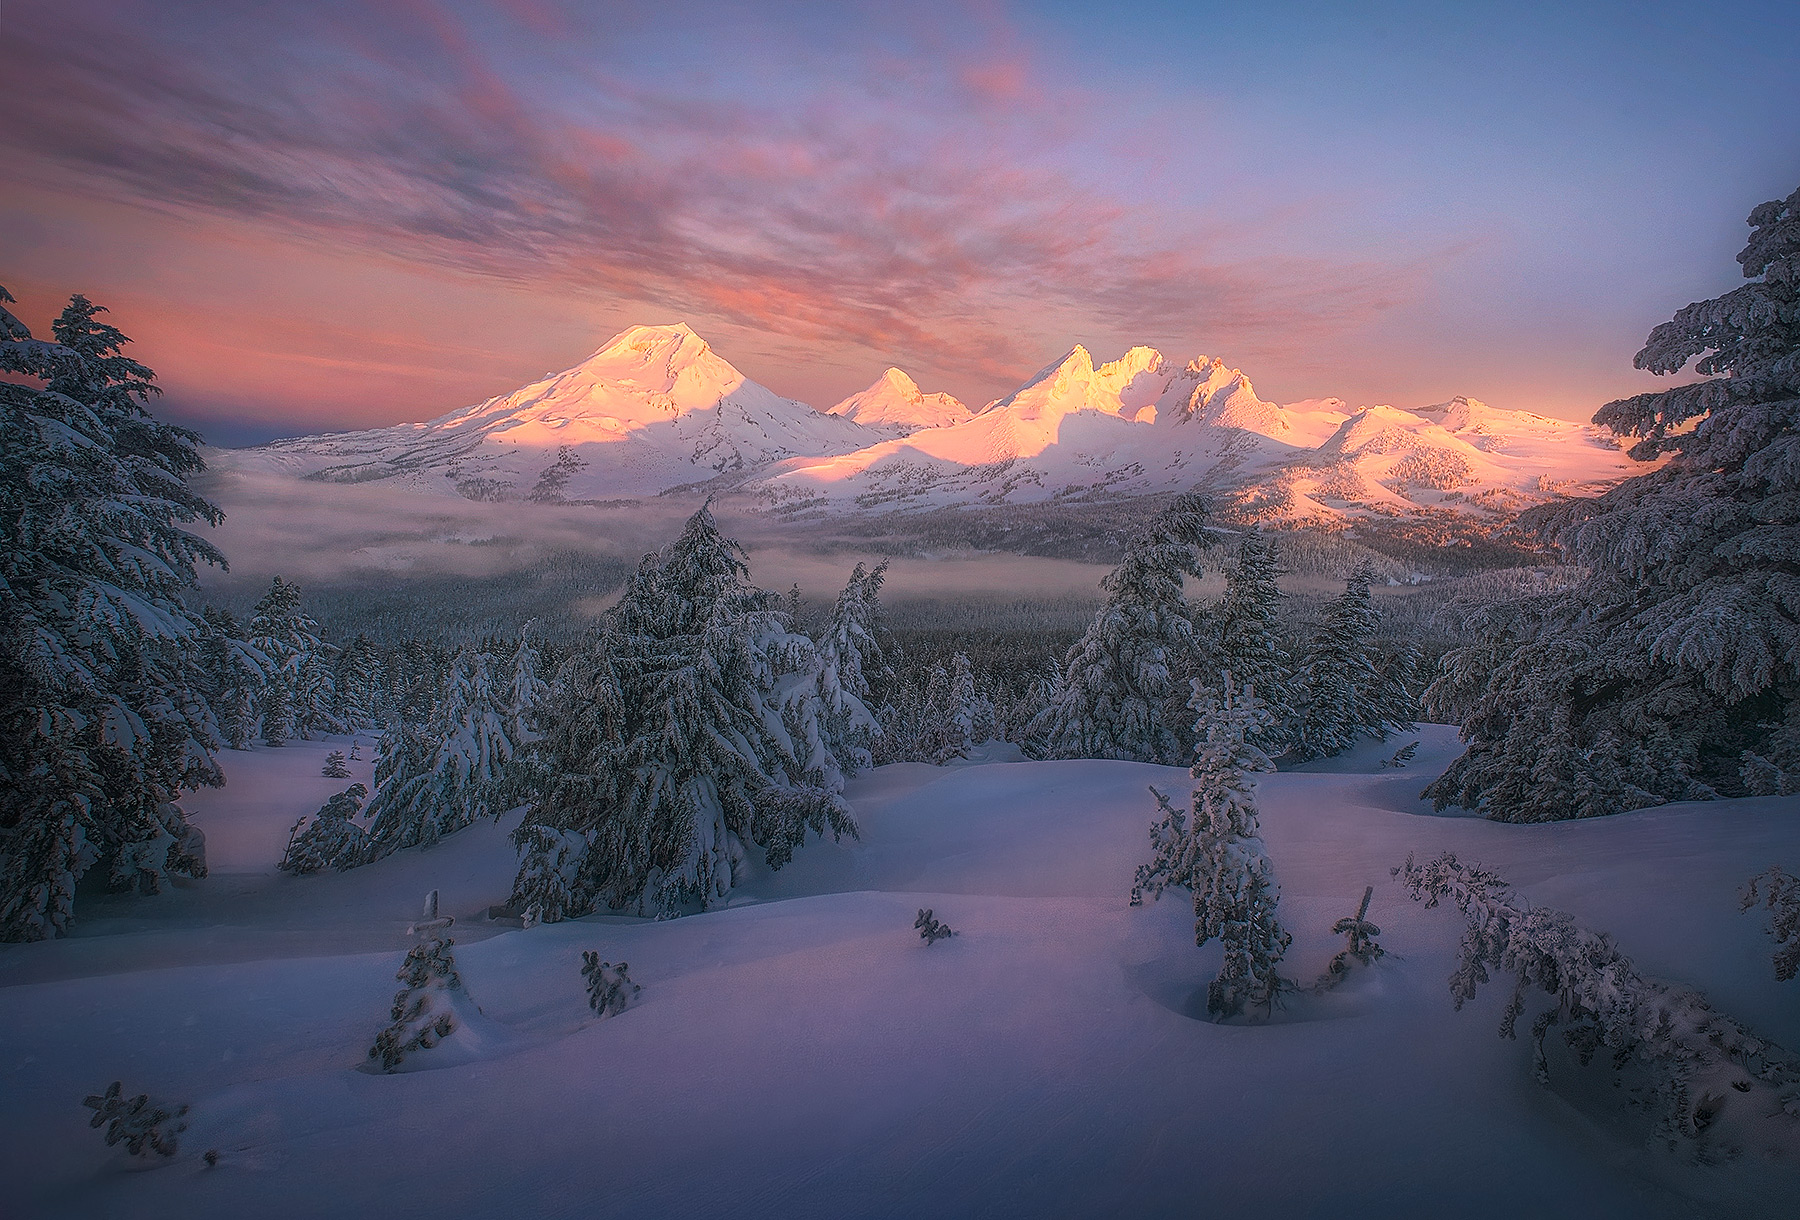 A beautiful winter morning dawns over the snowy Three Sisters wilderness in central Oregon